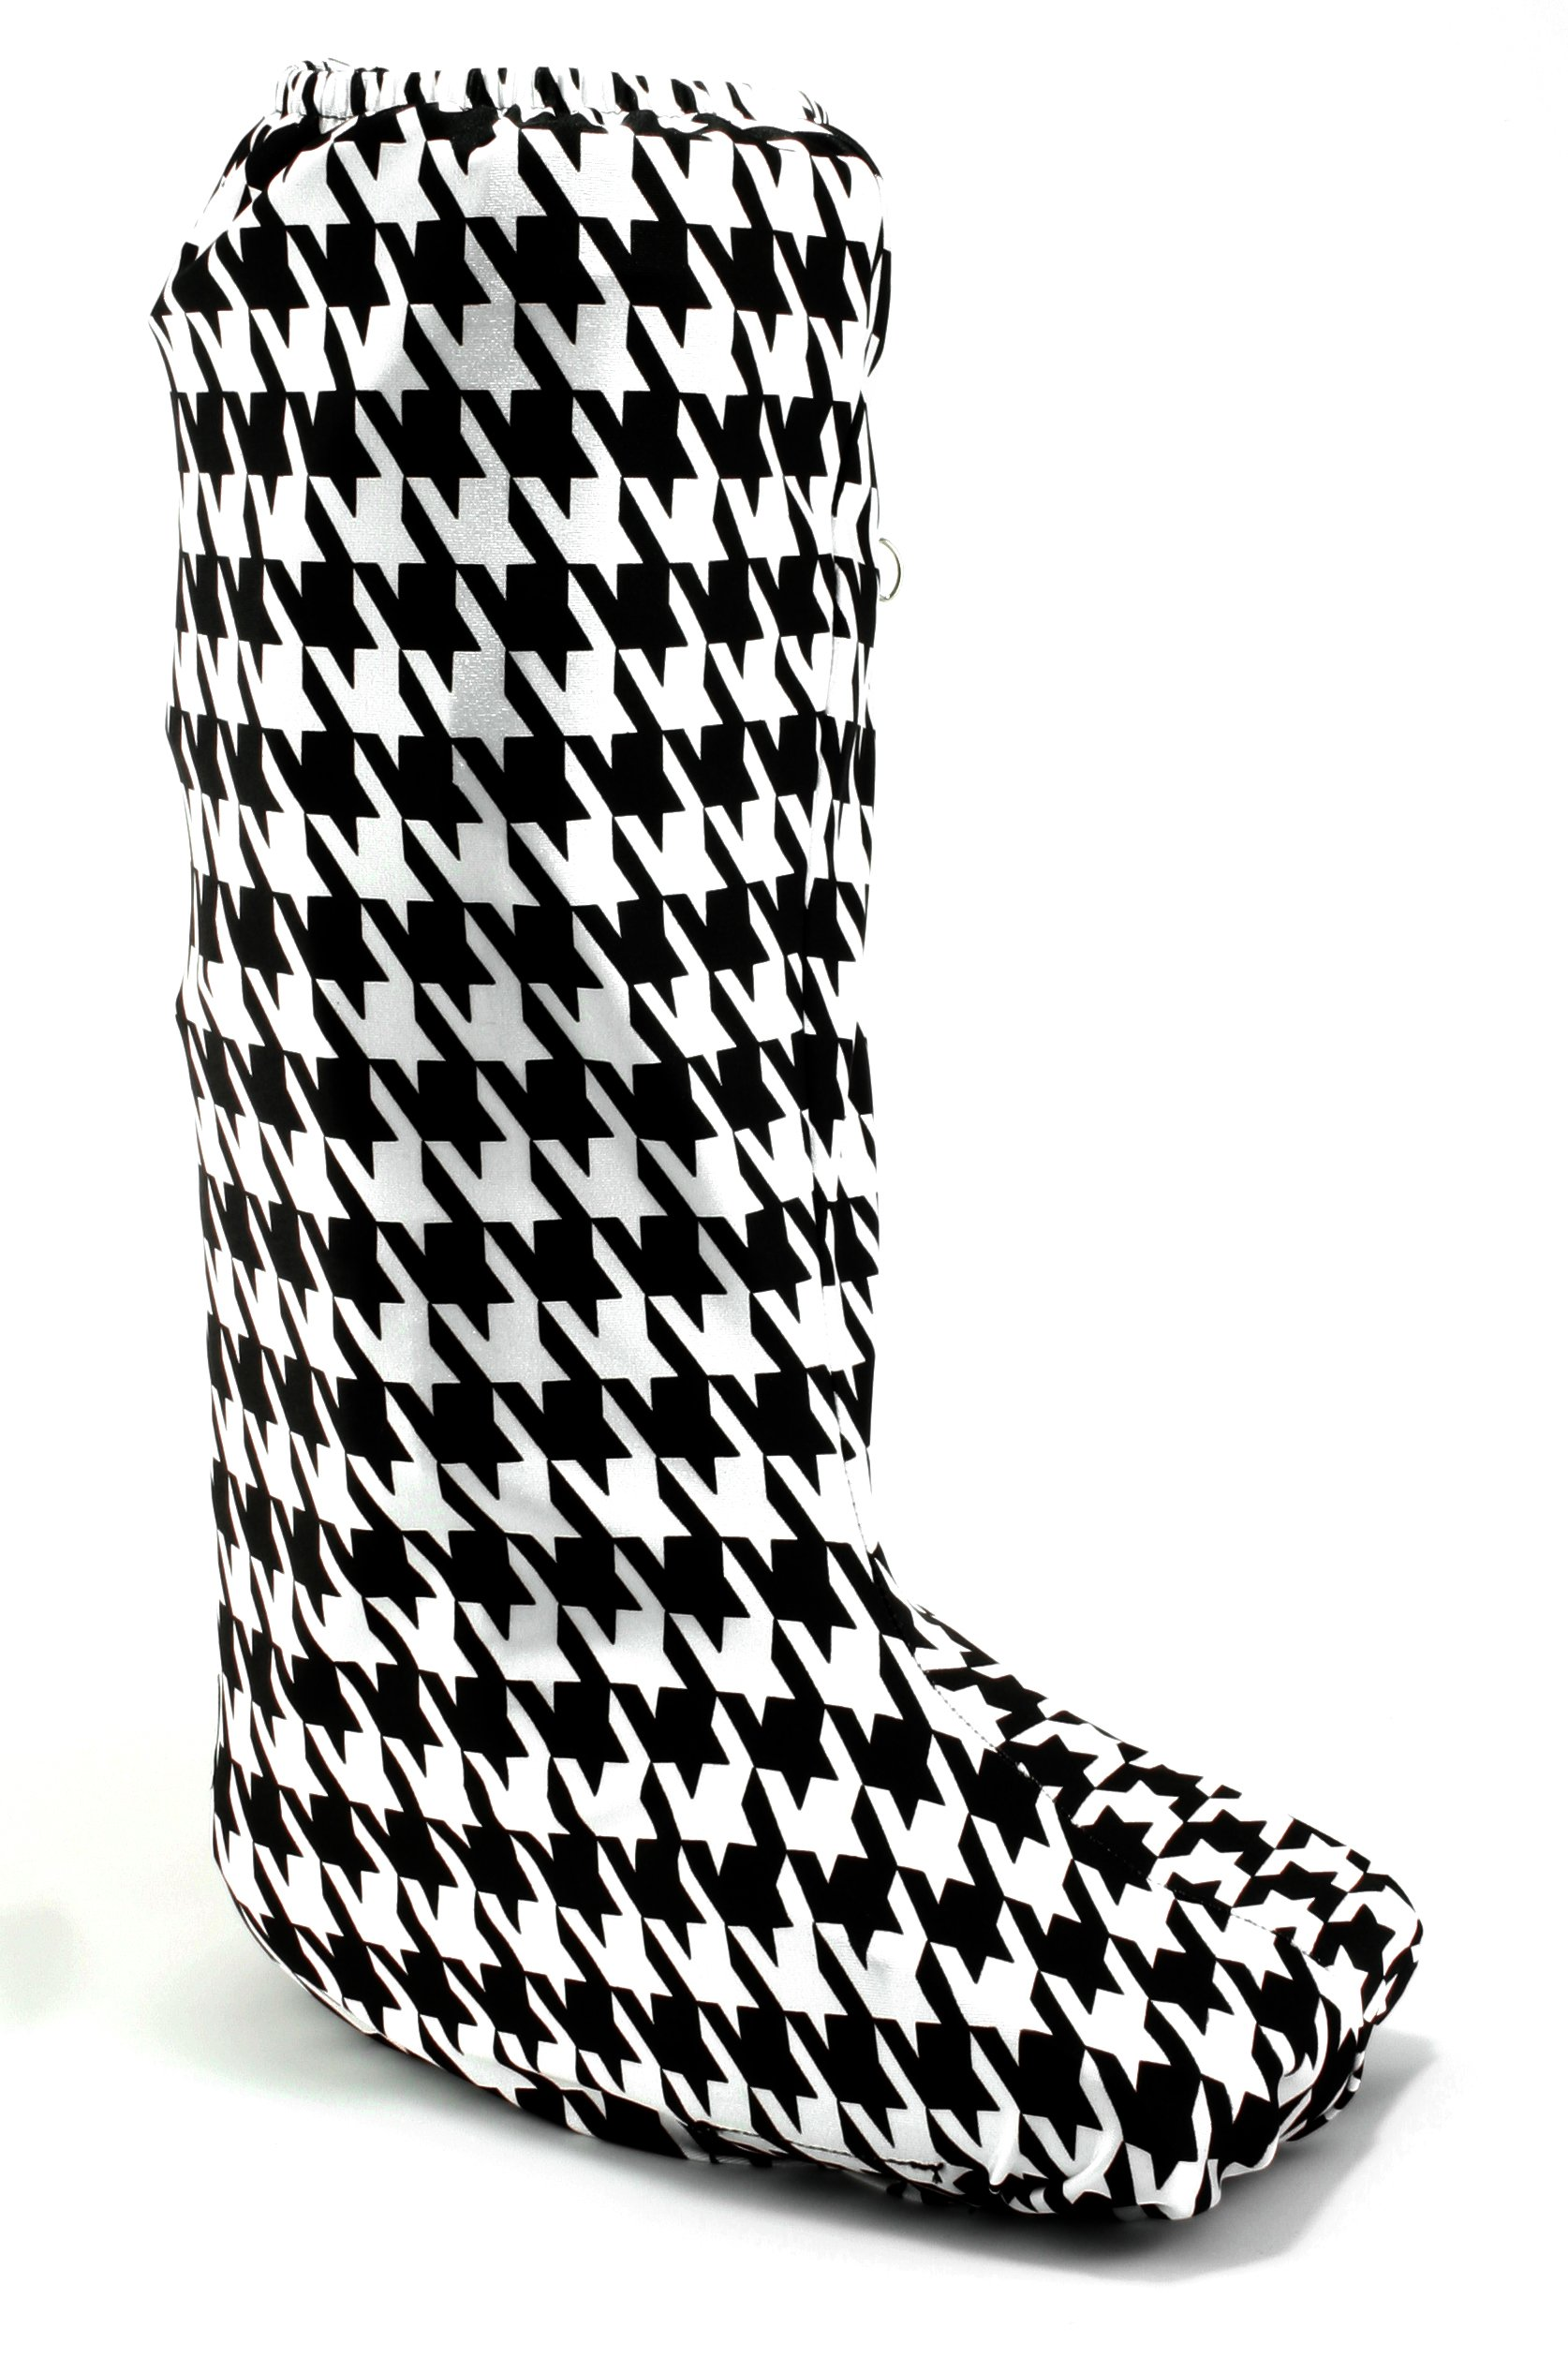 My Recovers Walking Boot Cover for Fracture Boot, Fashion Cover in Black-White Houndstooth, Size Extra Small, Tall Boot, Made in USA, Orthopedic Products Accessories